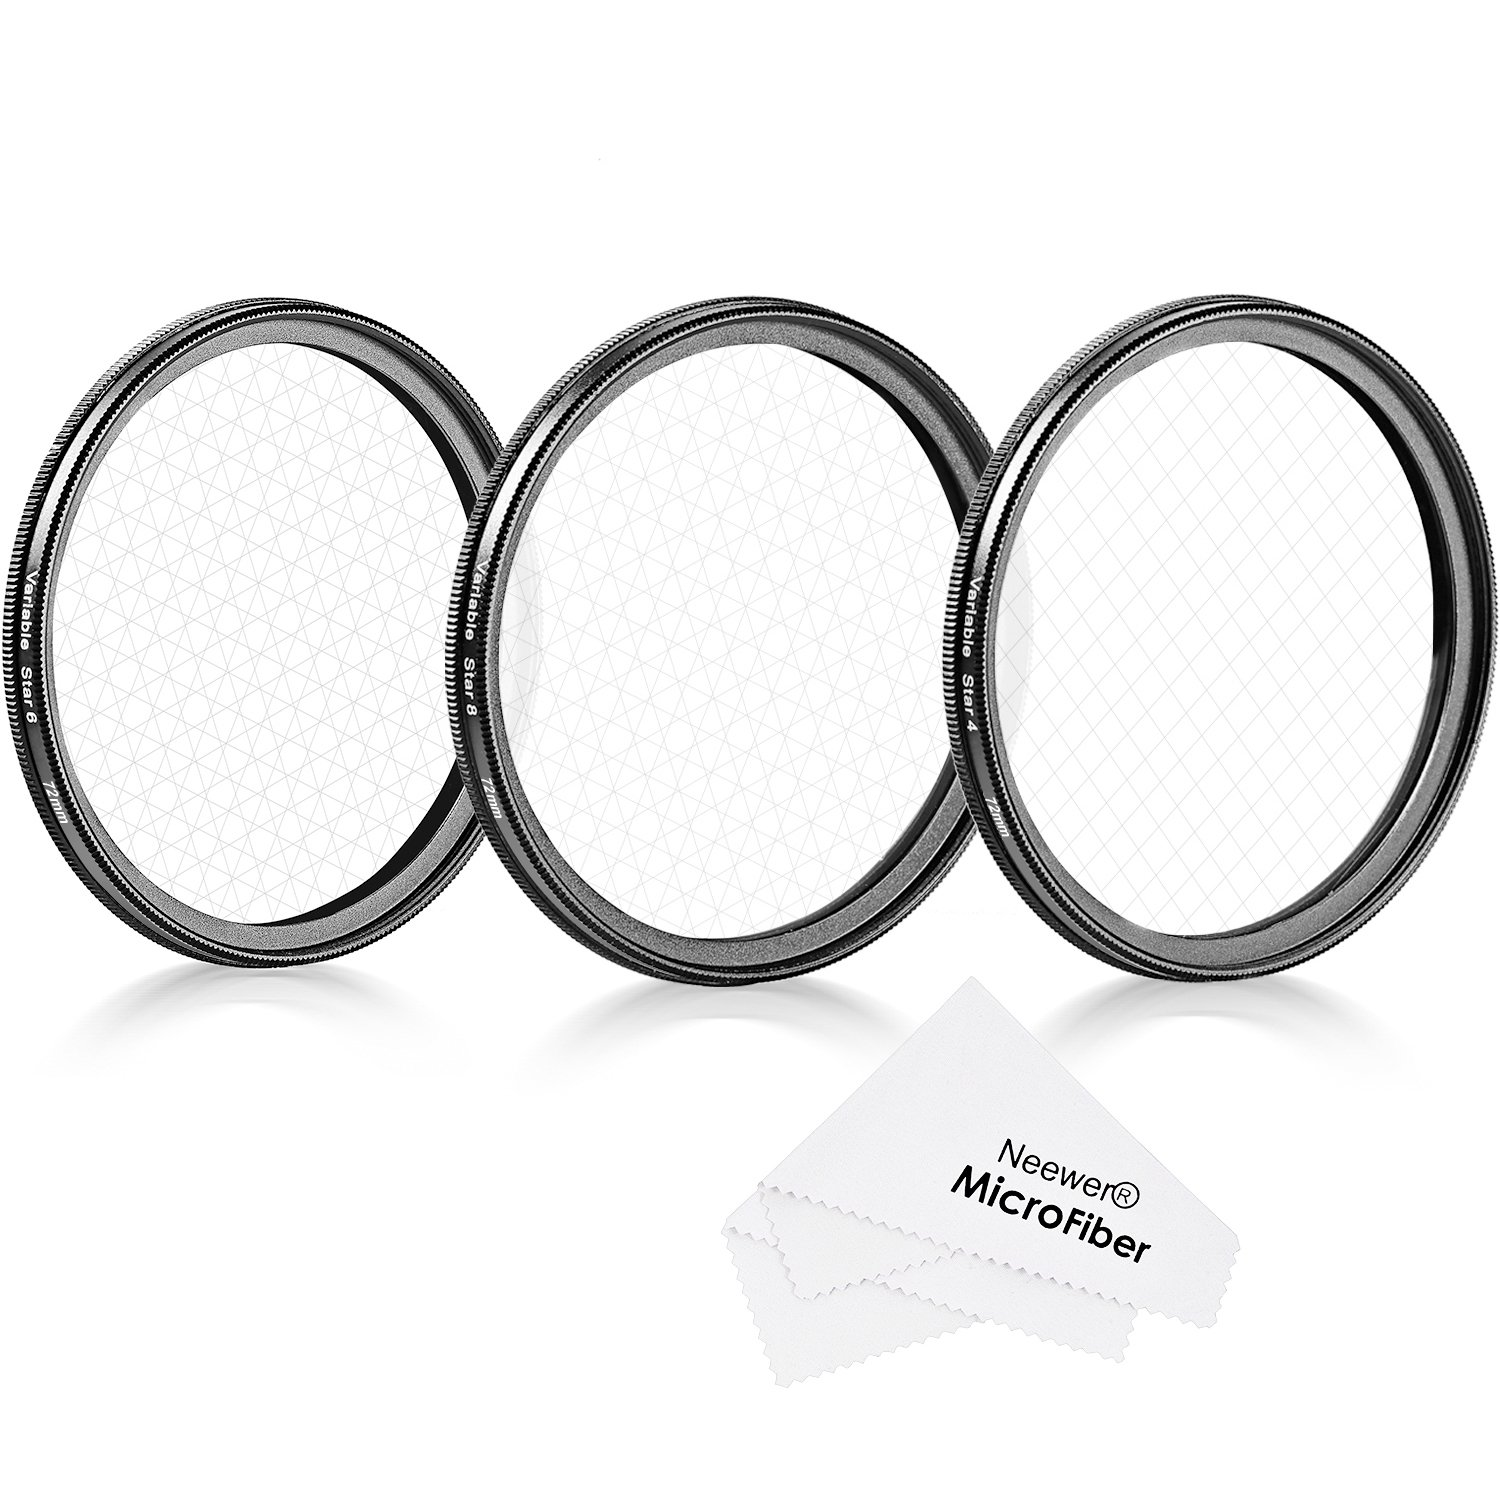 Neewer® 58mm Rotated Star Filter Set for Canon Nikon Sony Olympus and Other DSLR Cameras, Includes: 58mm Rotated 4-Point, 6-Point and 8-Point Star Cross Filter with Microfiber Cleaning Cloth